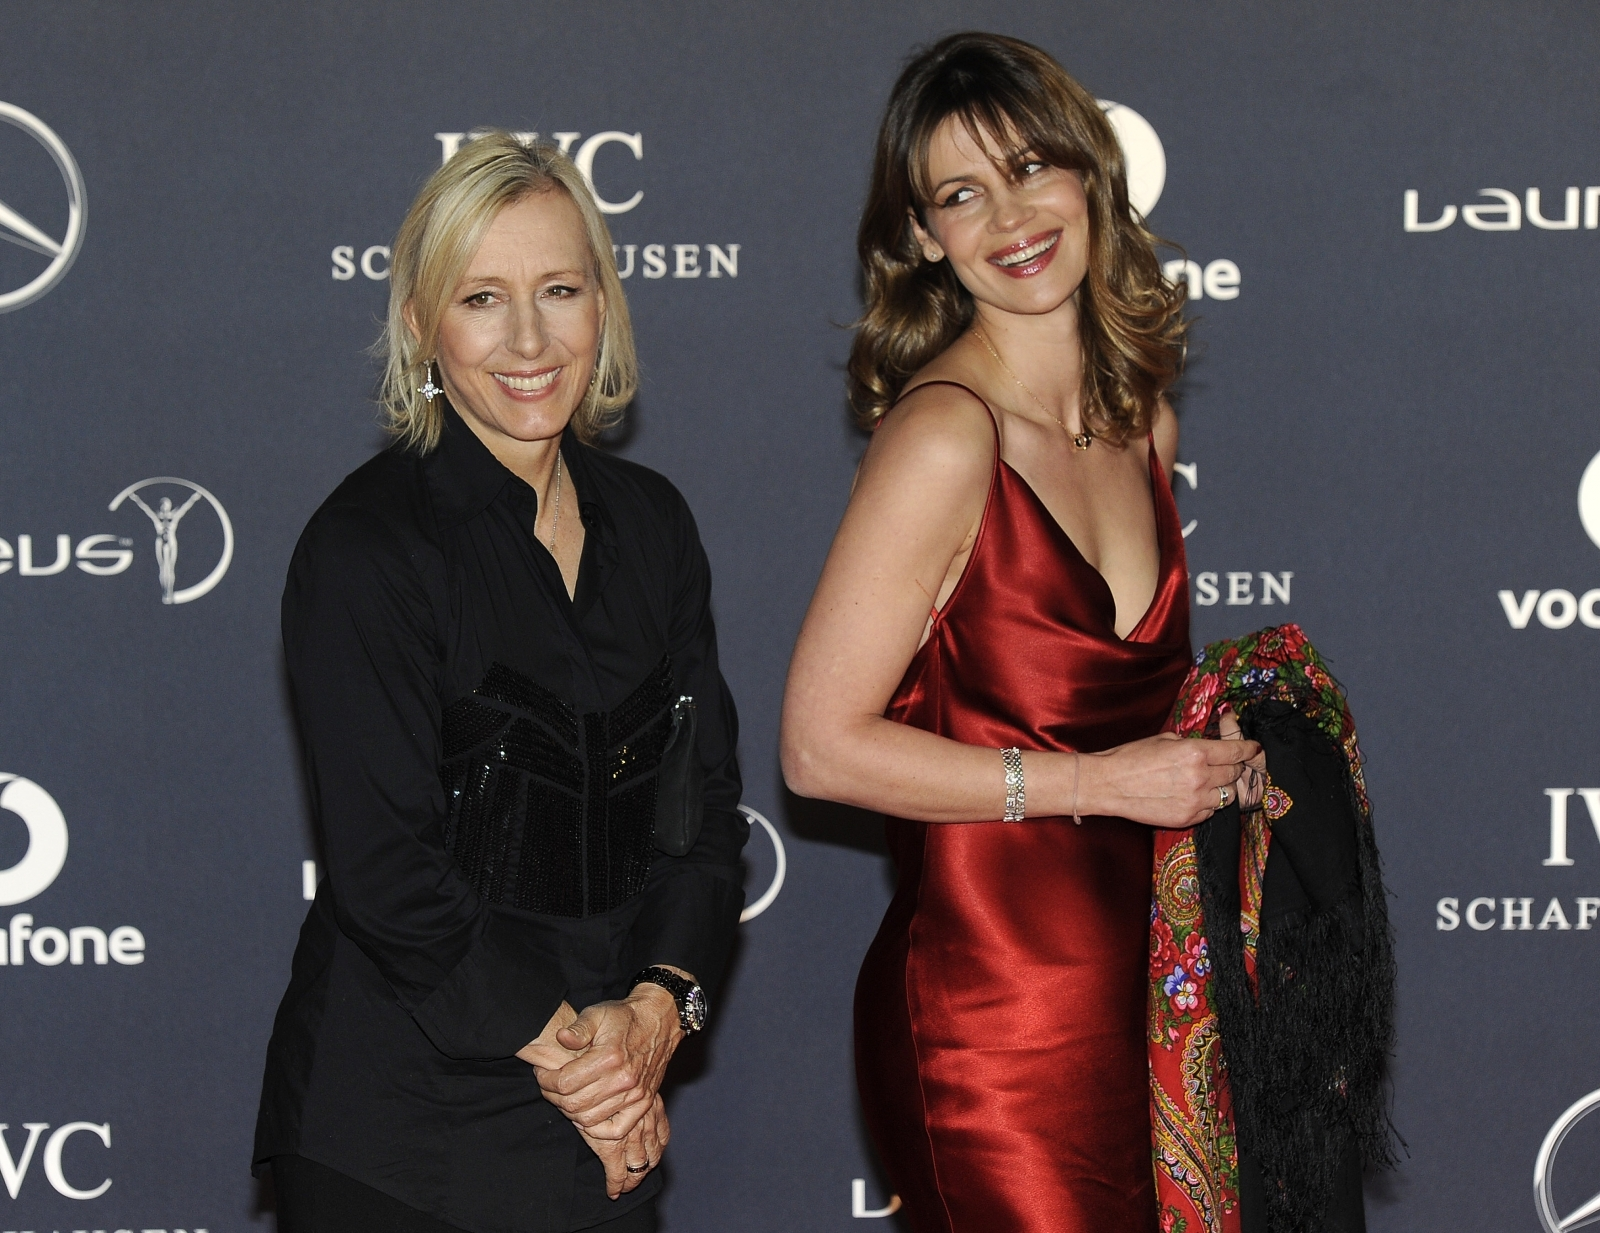 Martina Navratilova and wife Julia Lemigova